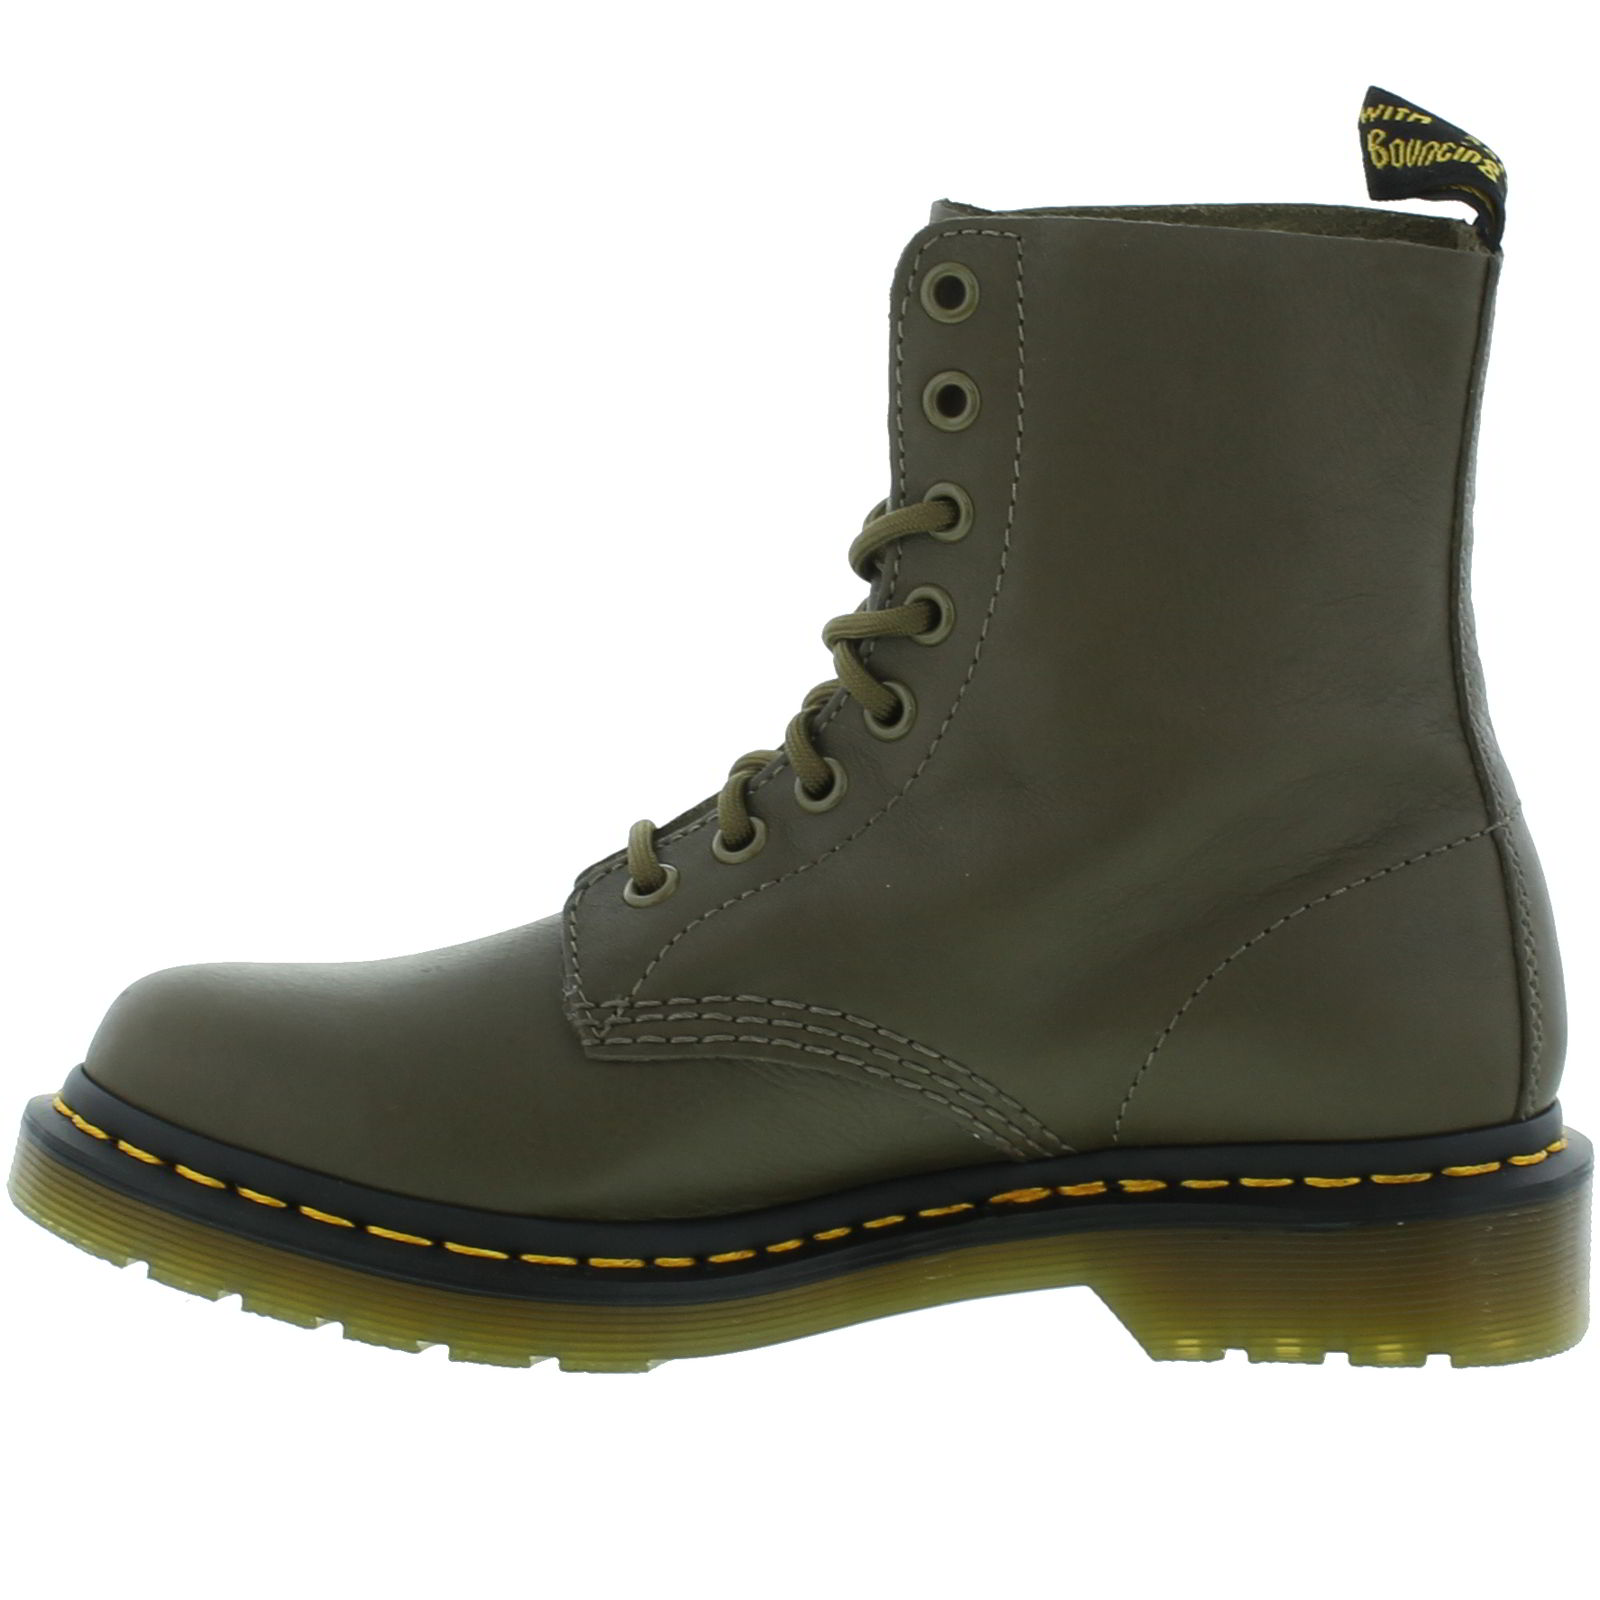 dr martens 1460 pascal womens green soft leather ankle boots size 4 8. Black Bedroom Furniture Sets. Home Design Ideas